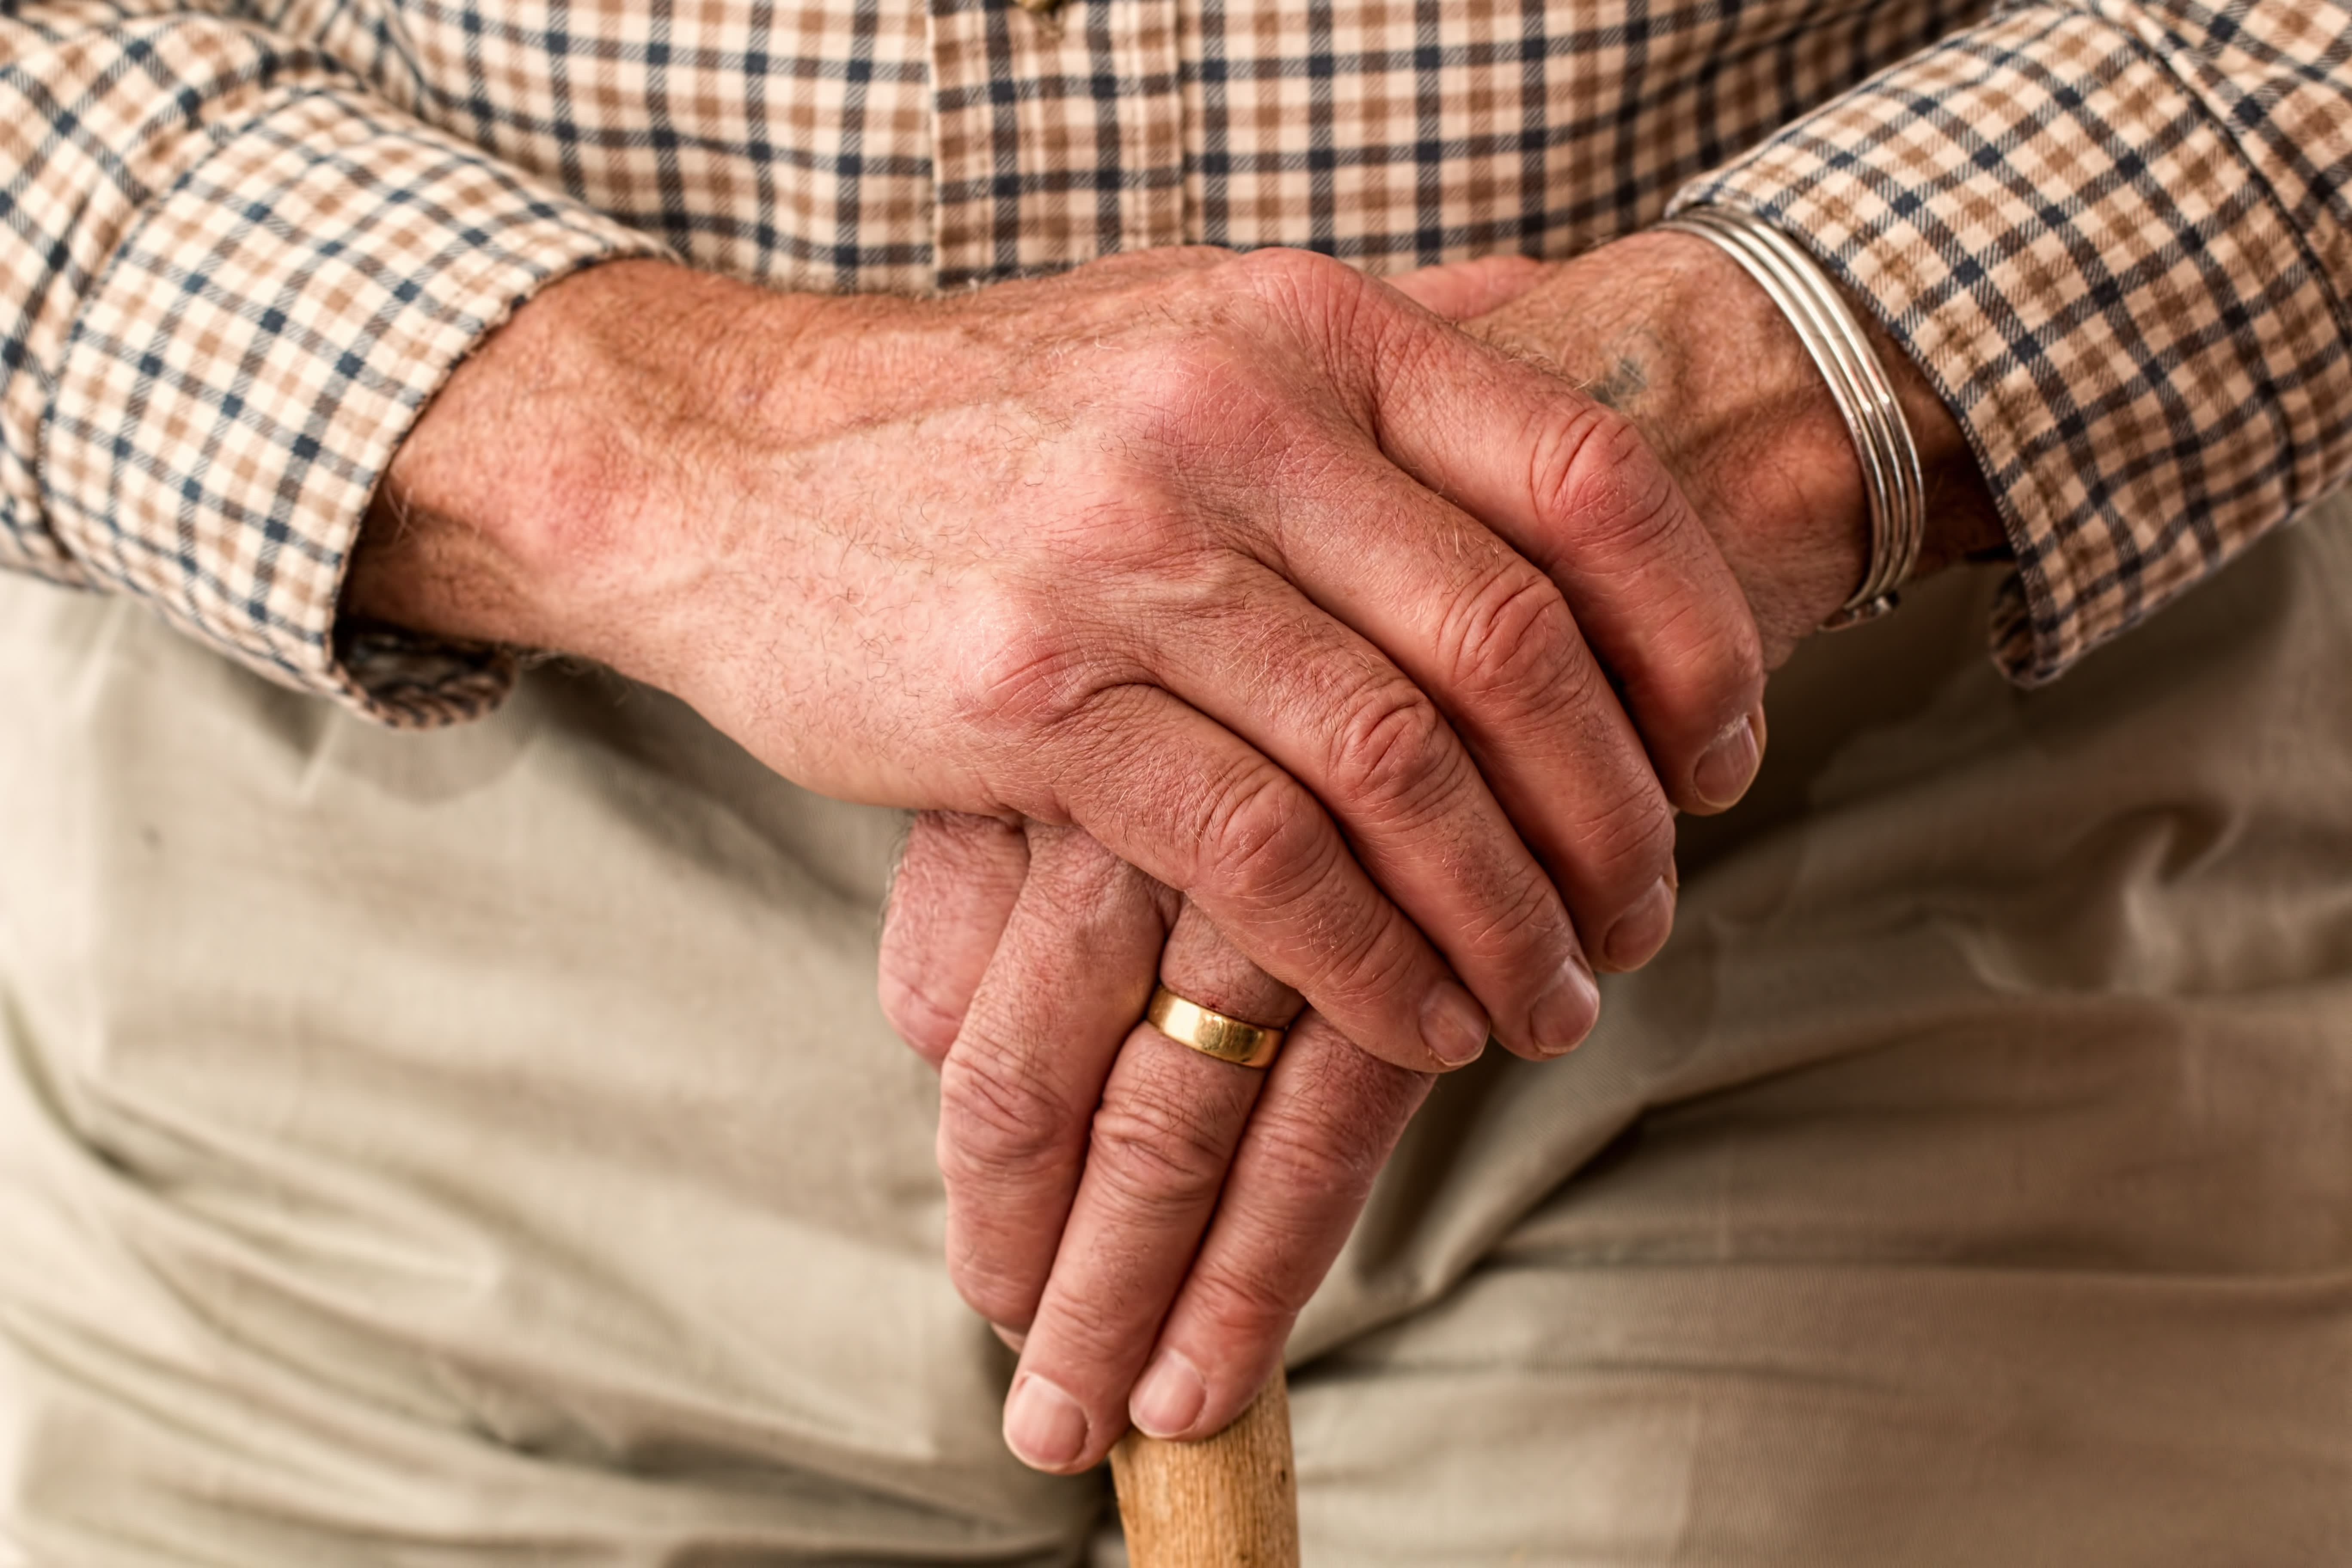 Power of attorney rise leads to misuse concerns